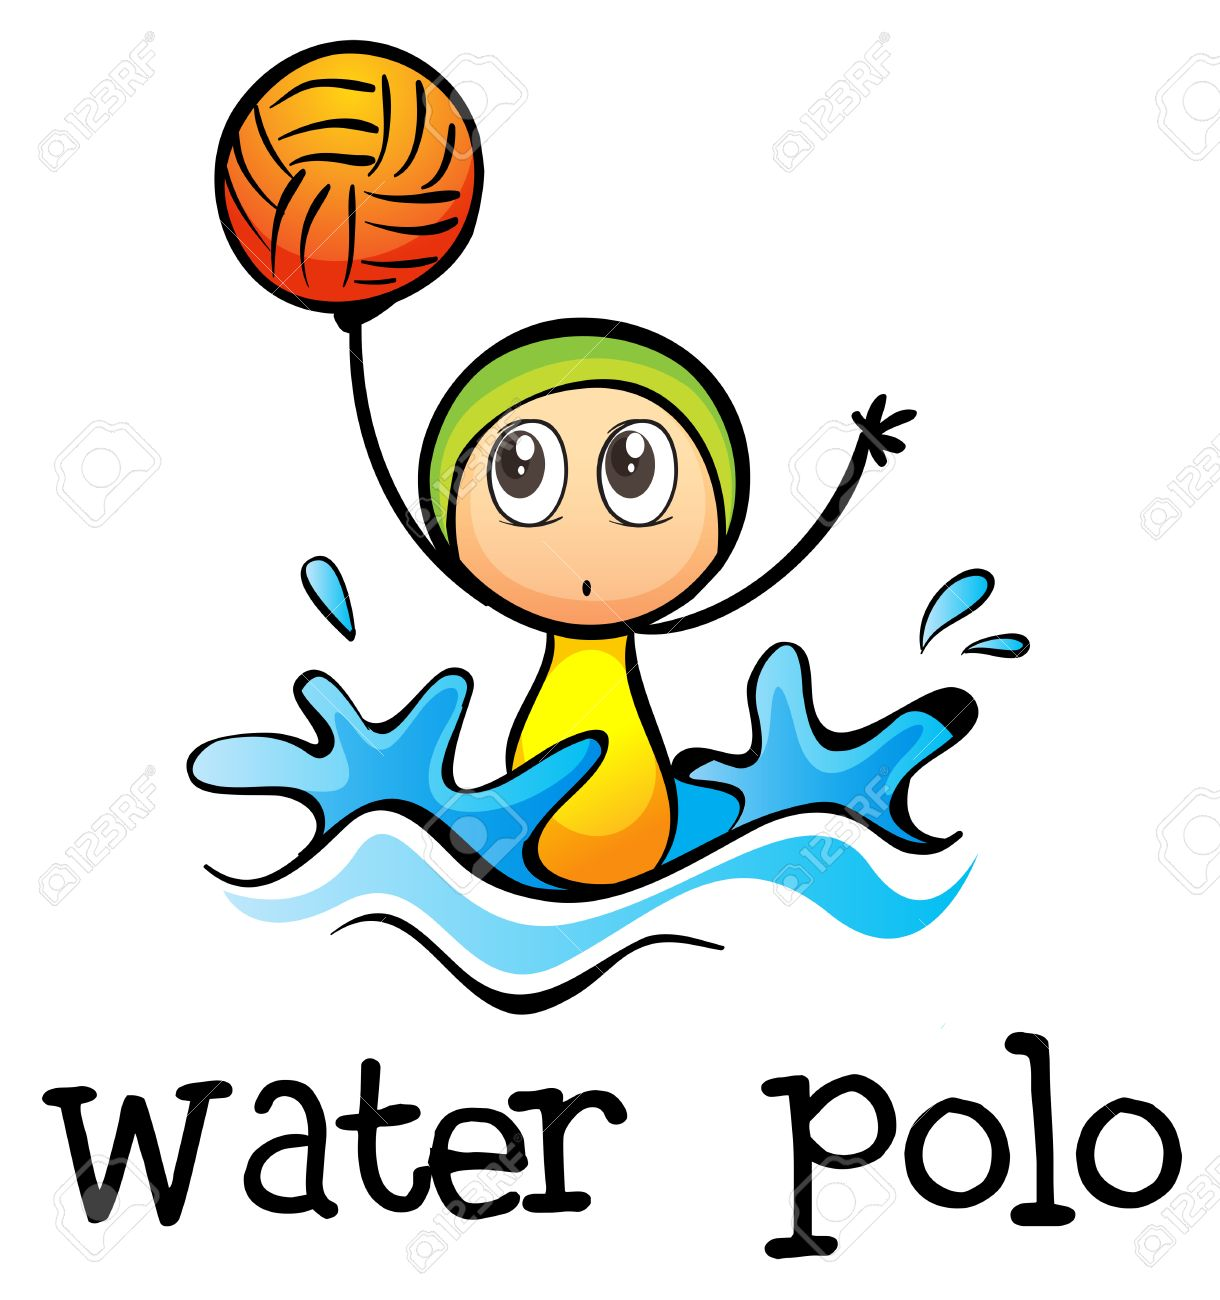 illustration of a stickman playing water polo on a white background rh 123rf com water polo ball clip art free water polo clipart